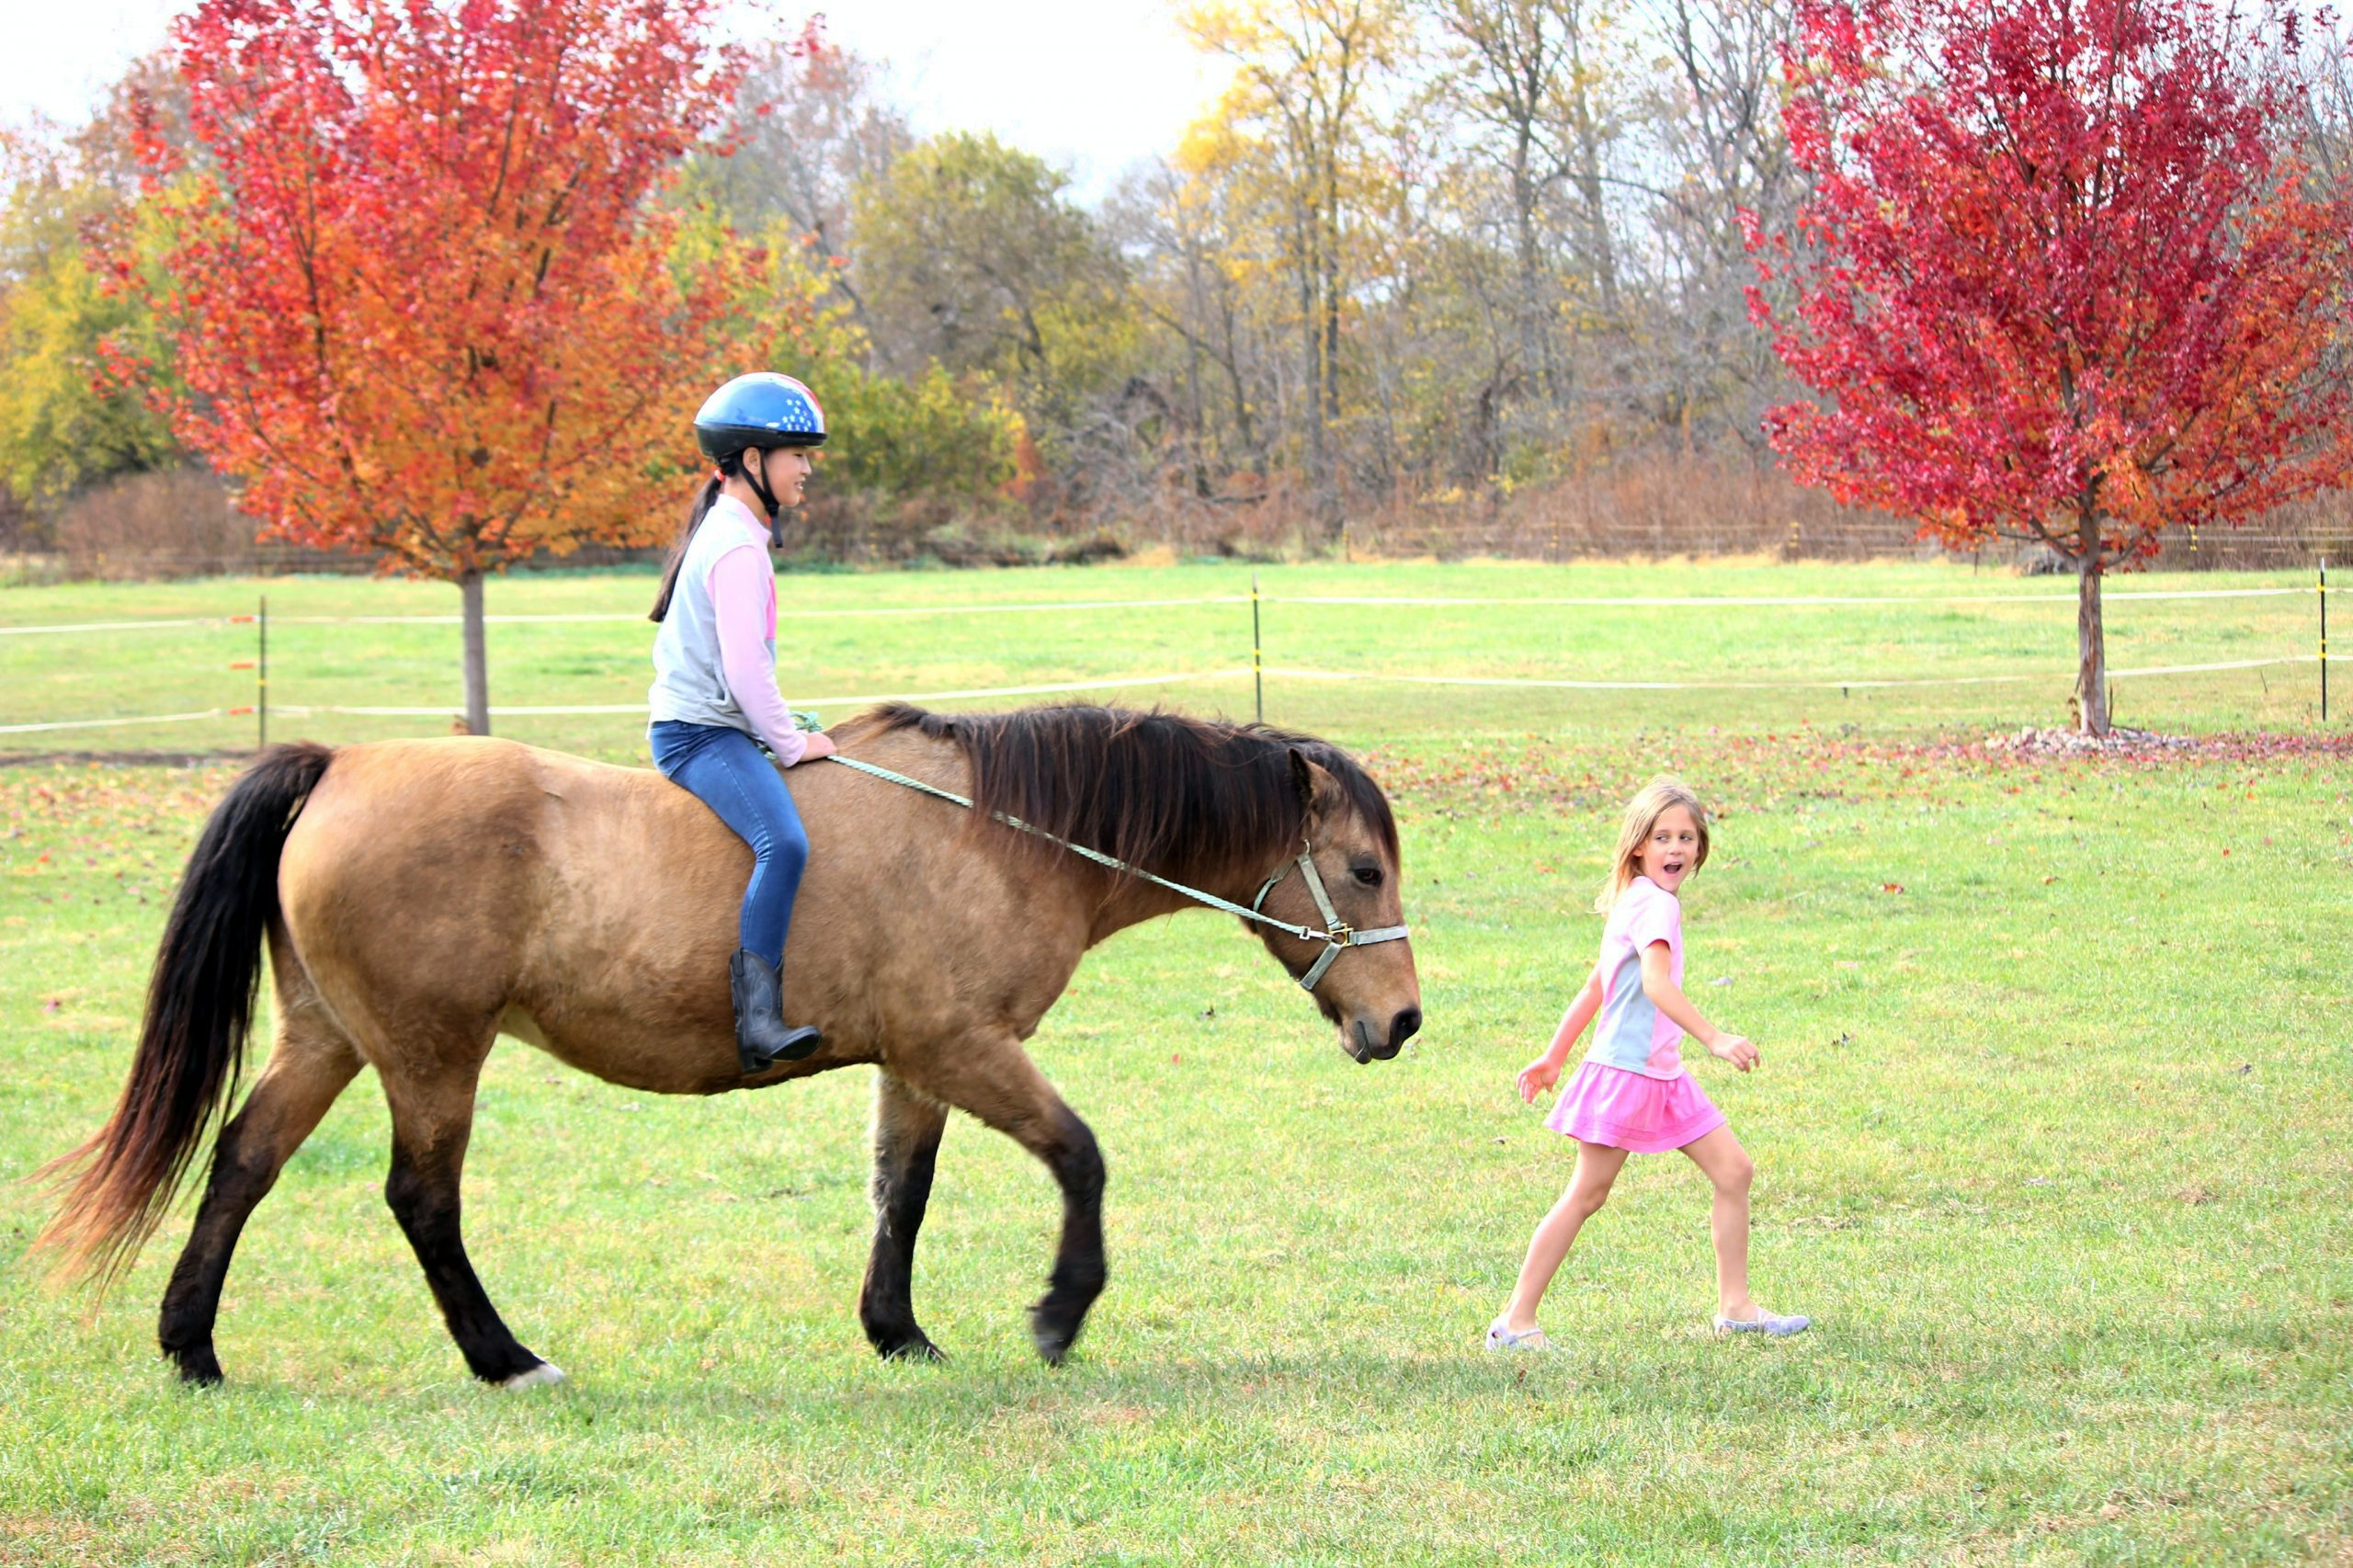 woman riding on brown horse near girl walking on grass during daytime